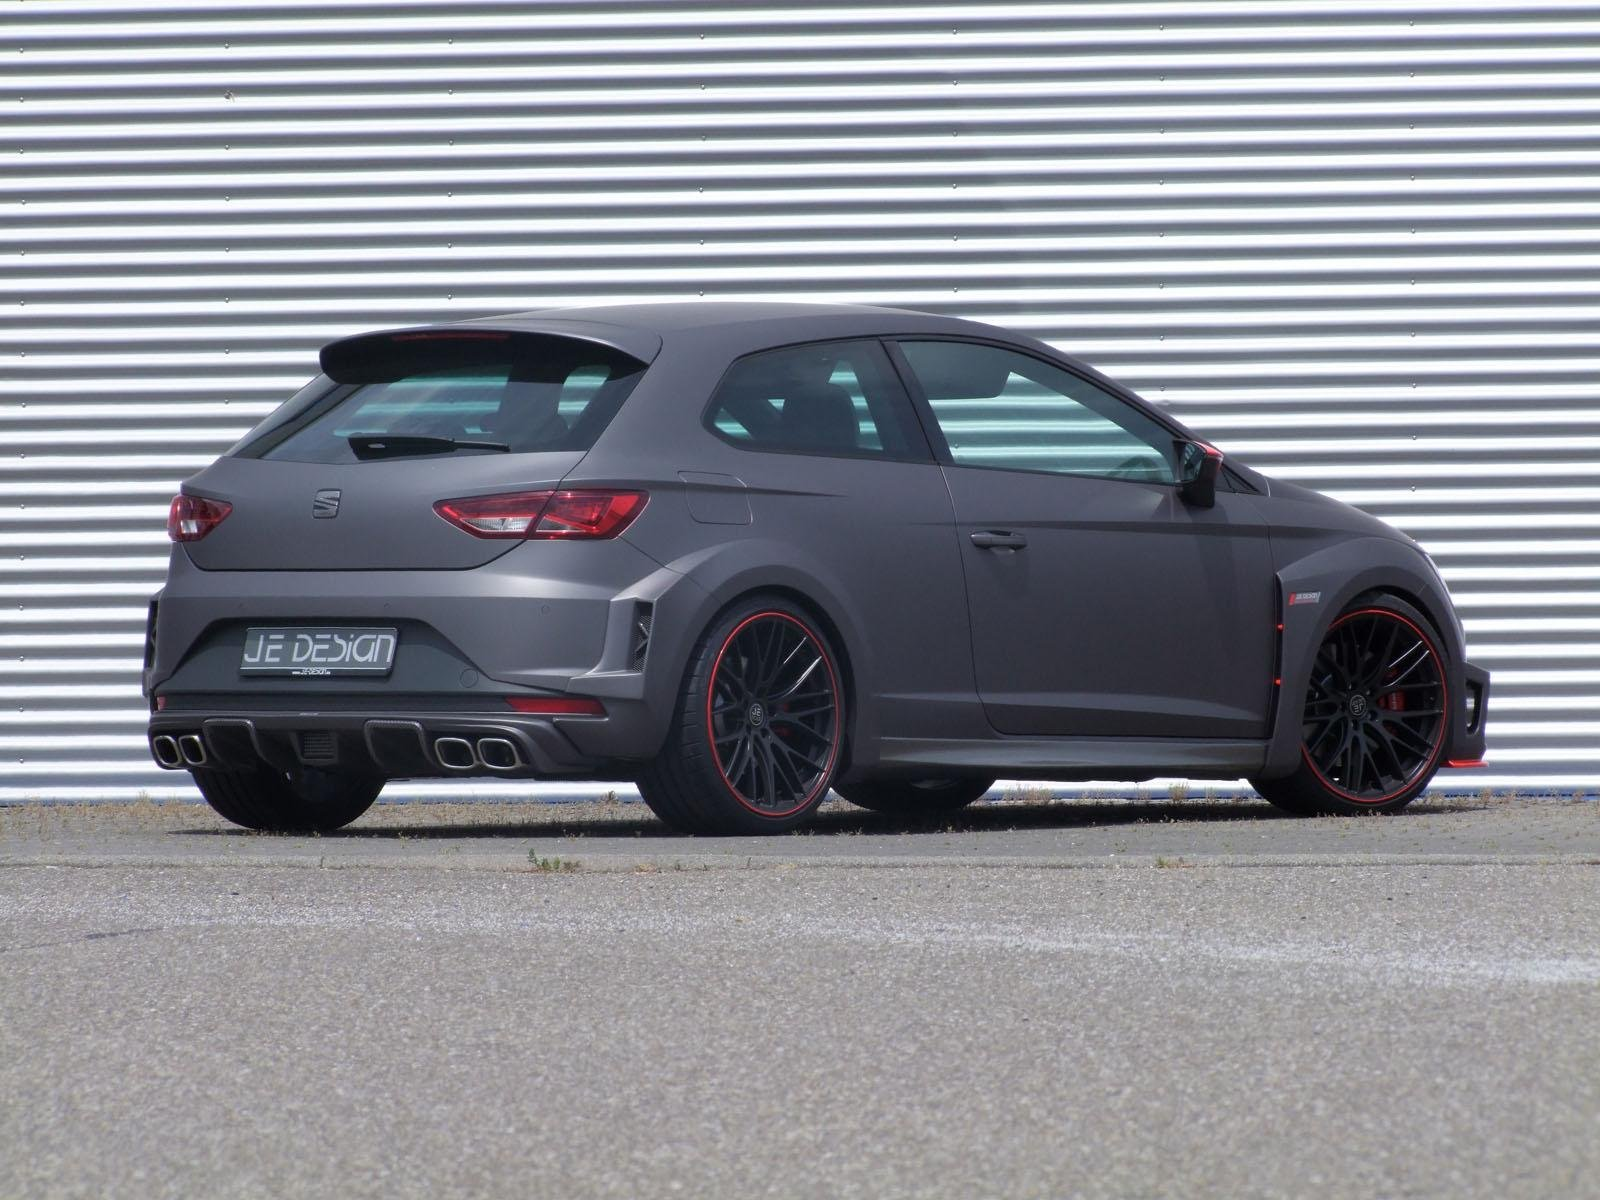 seat leon cupra tuning 2014 wallpaper 1600x1200 390466 wallpaperup. Black Bedroom Furniture Sets. Home Design Ideas